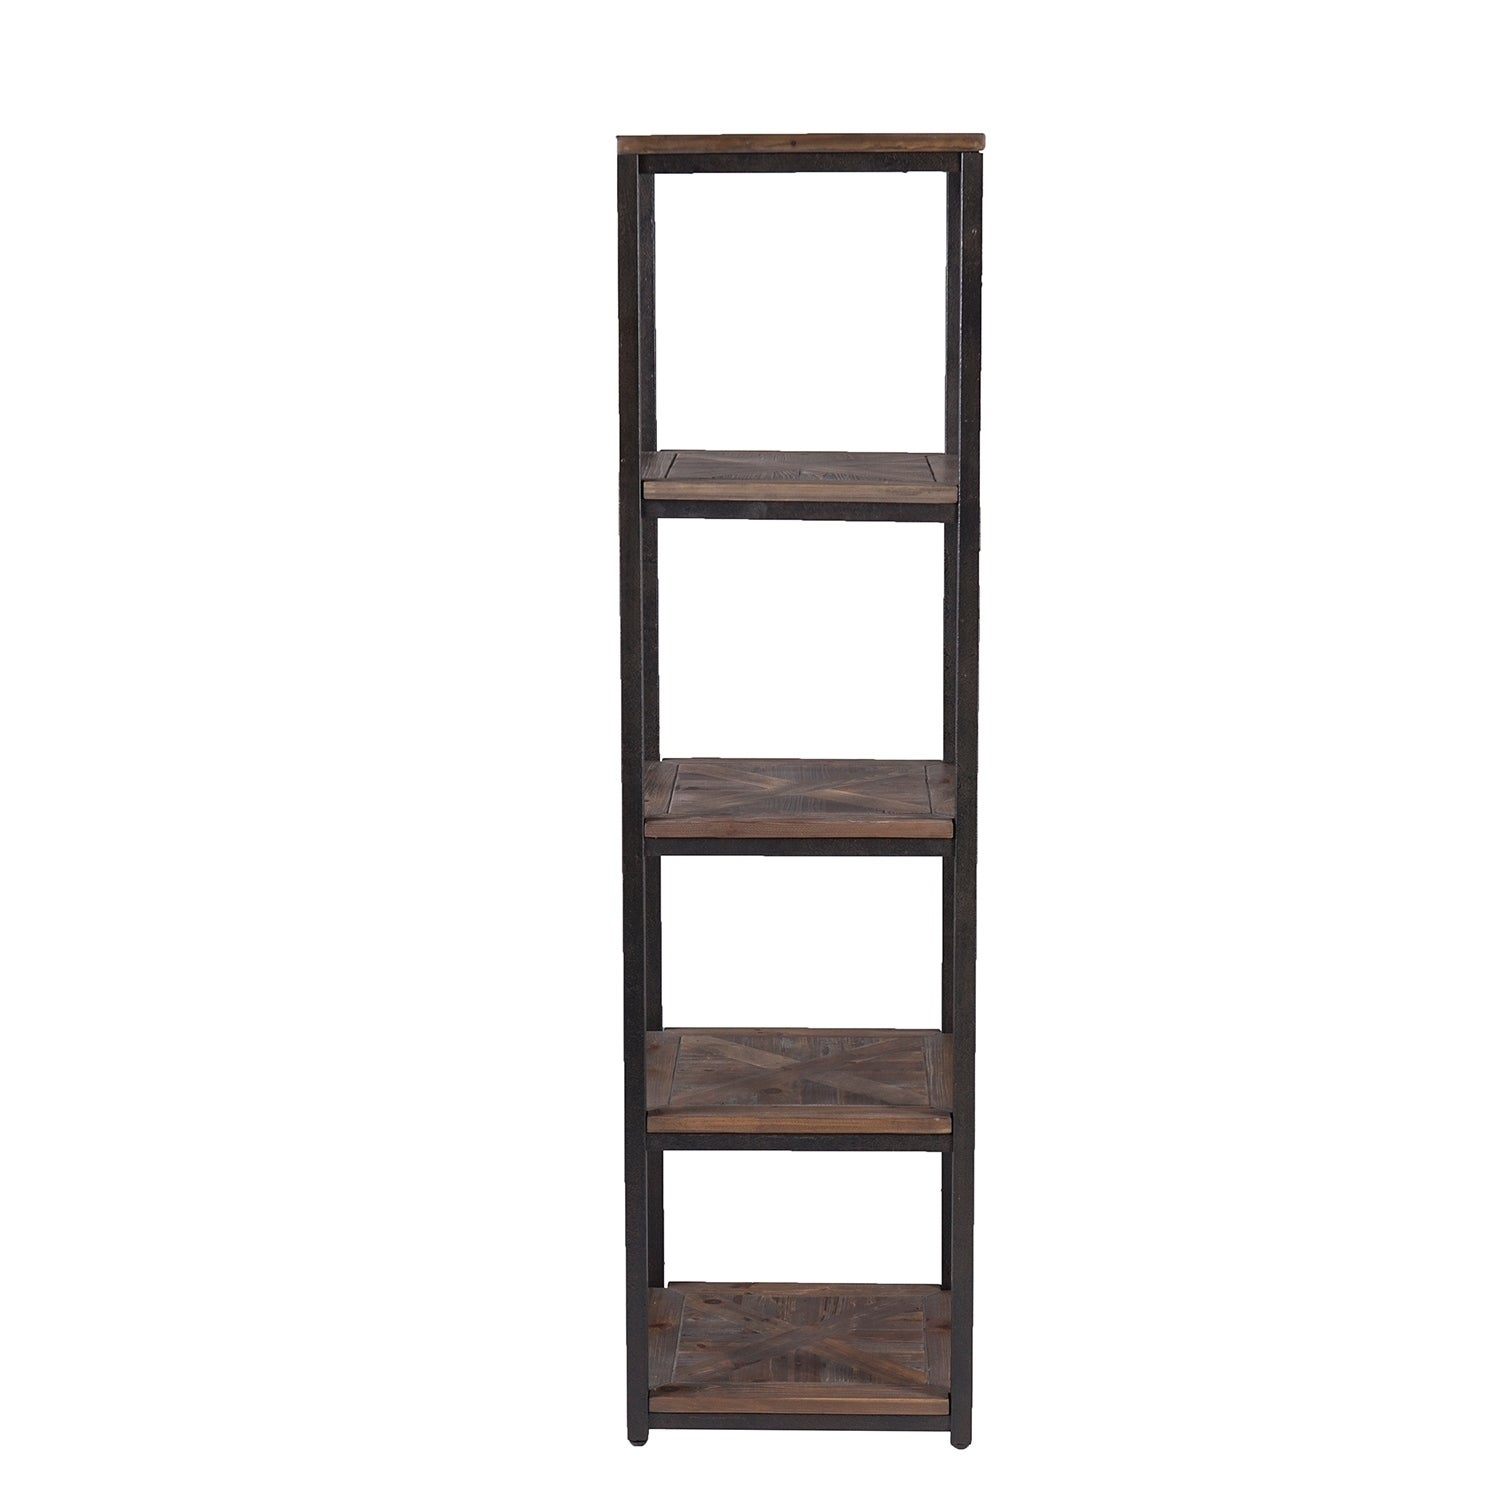 Harper Blvd Magnilio Rustic Black With Distressed Fir Media Bookcase